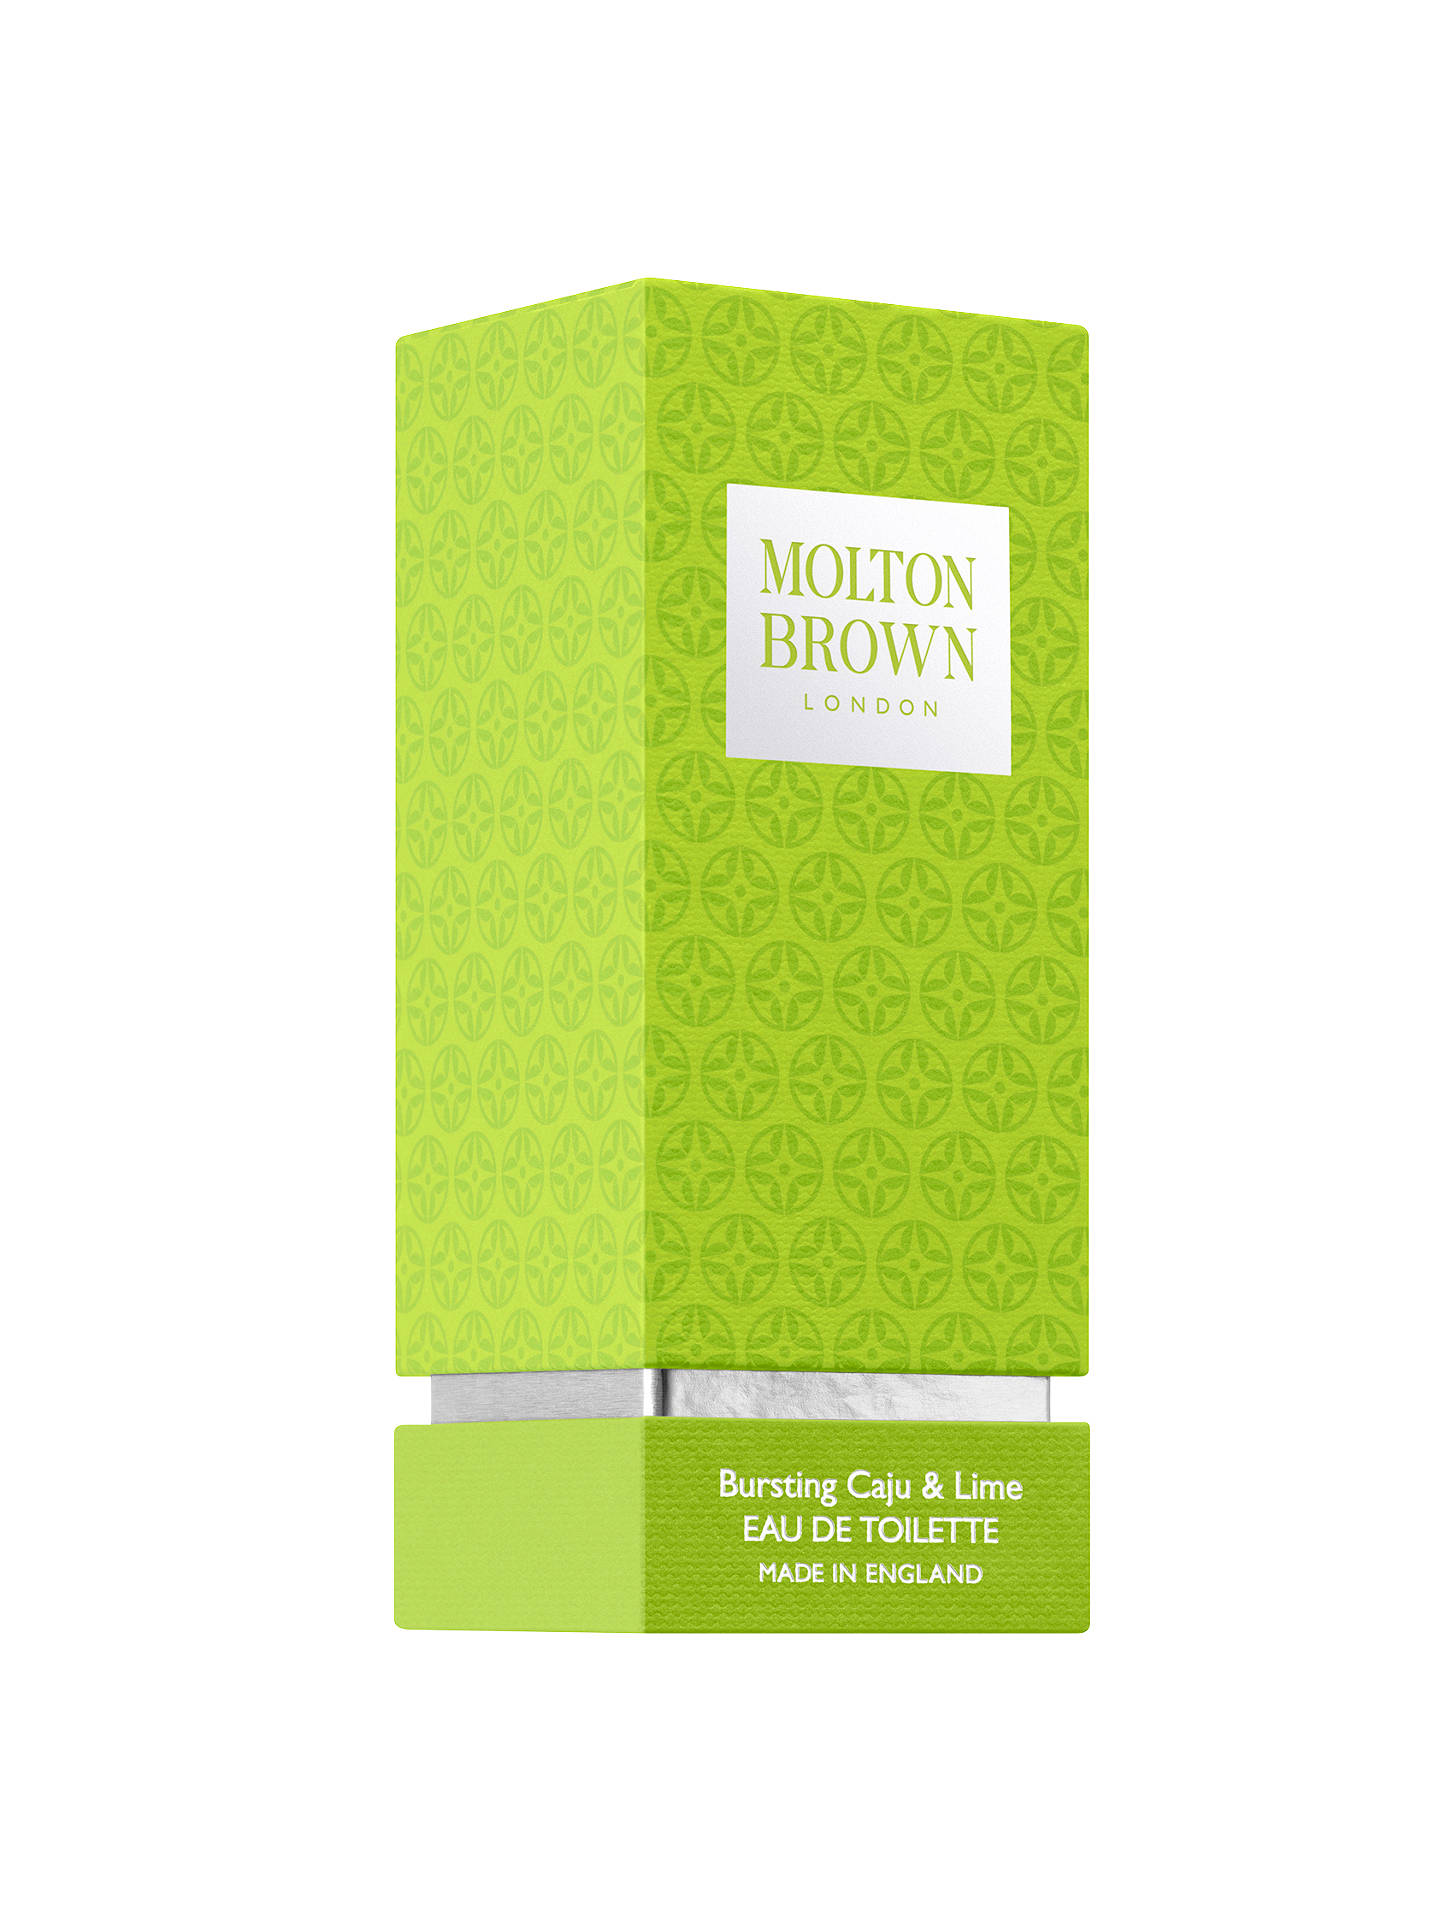 Buy Molton Brown Bursting Caju & Lime Eau de Toilette, 50ml Online at johnlewis.com